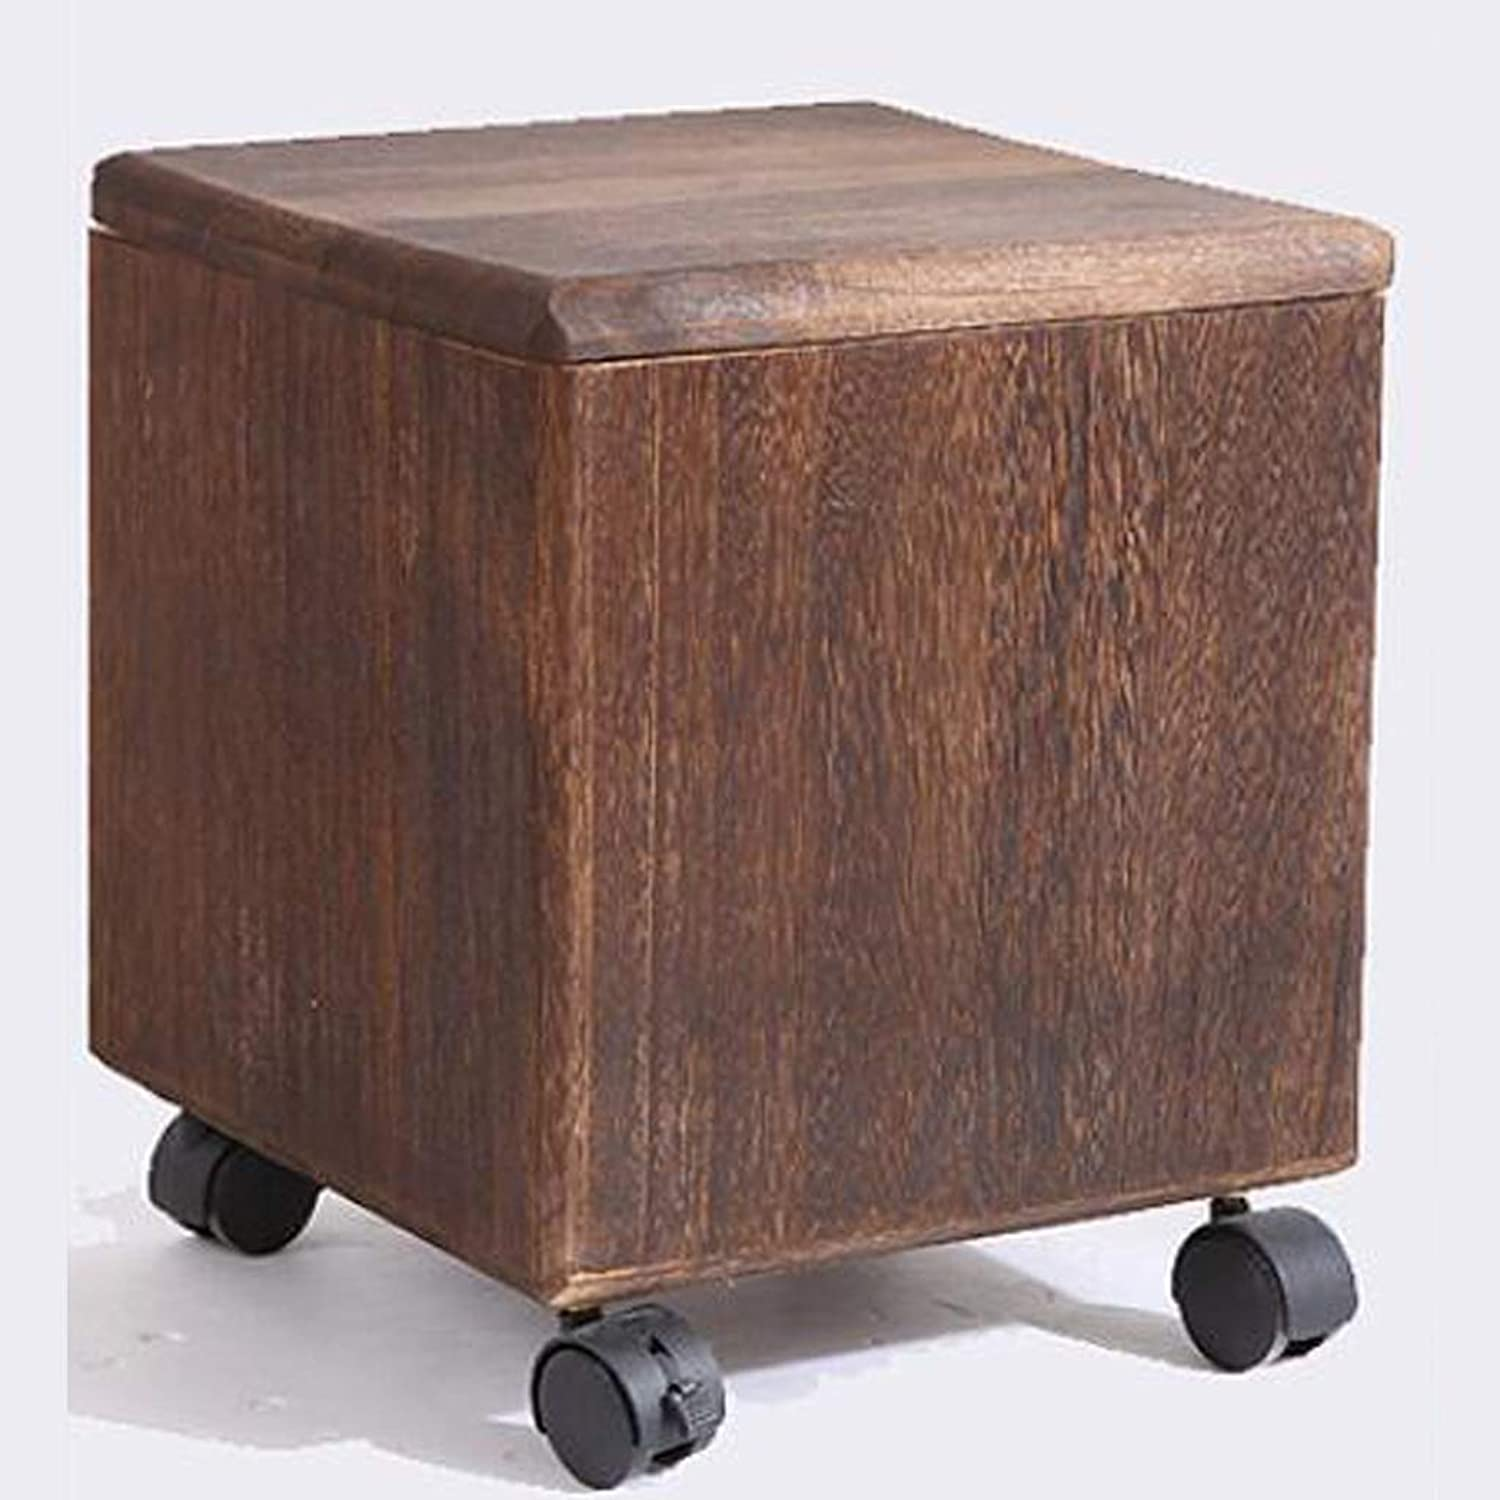 QYSZYG Household Solid Wood Stool, Simple Storage Stool, Sundries Storage Box, Multi-Purpose shoes Bench Stool (color   Brown)